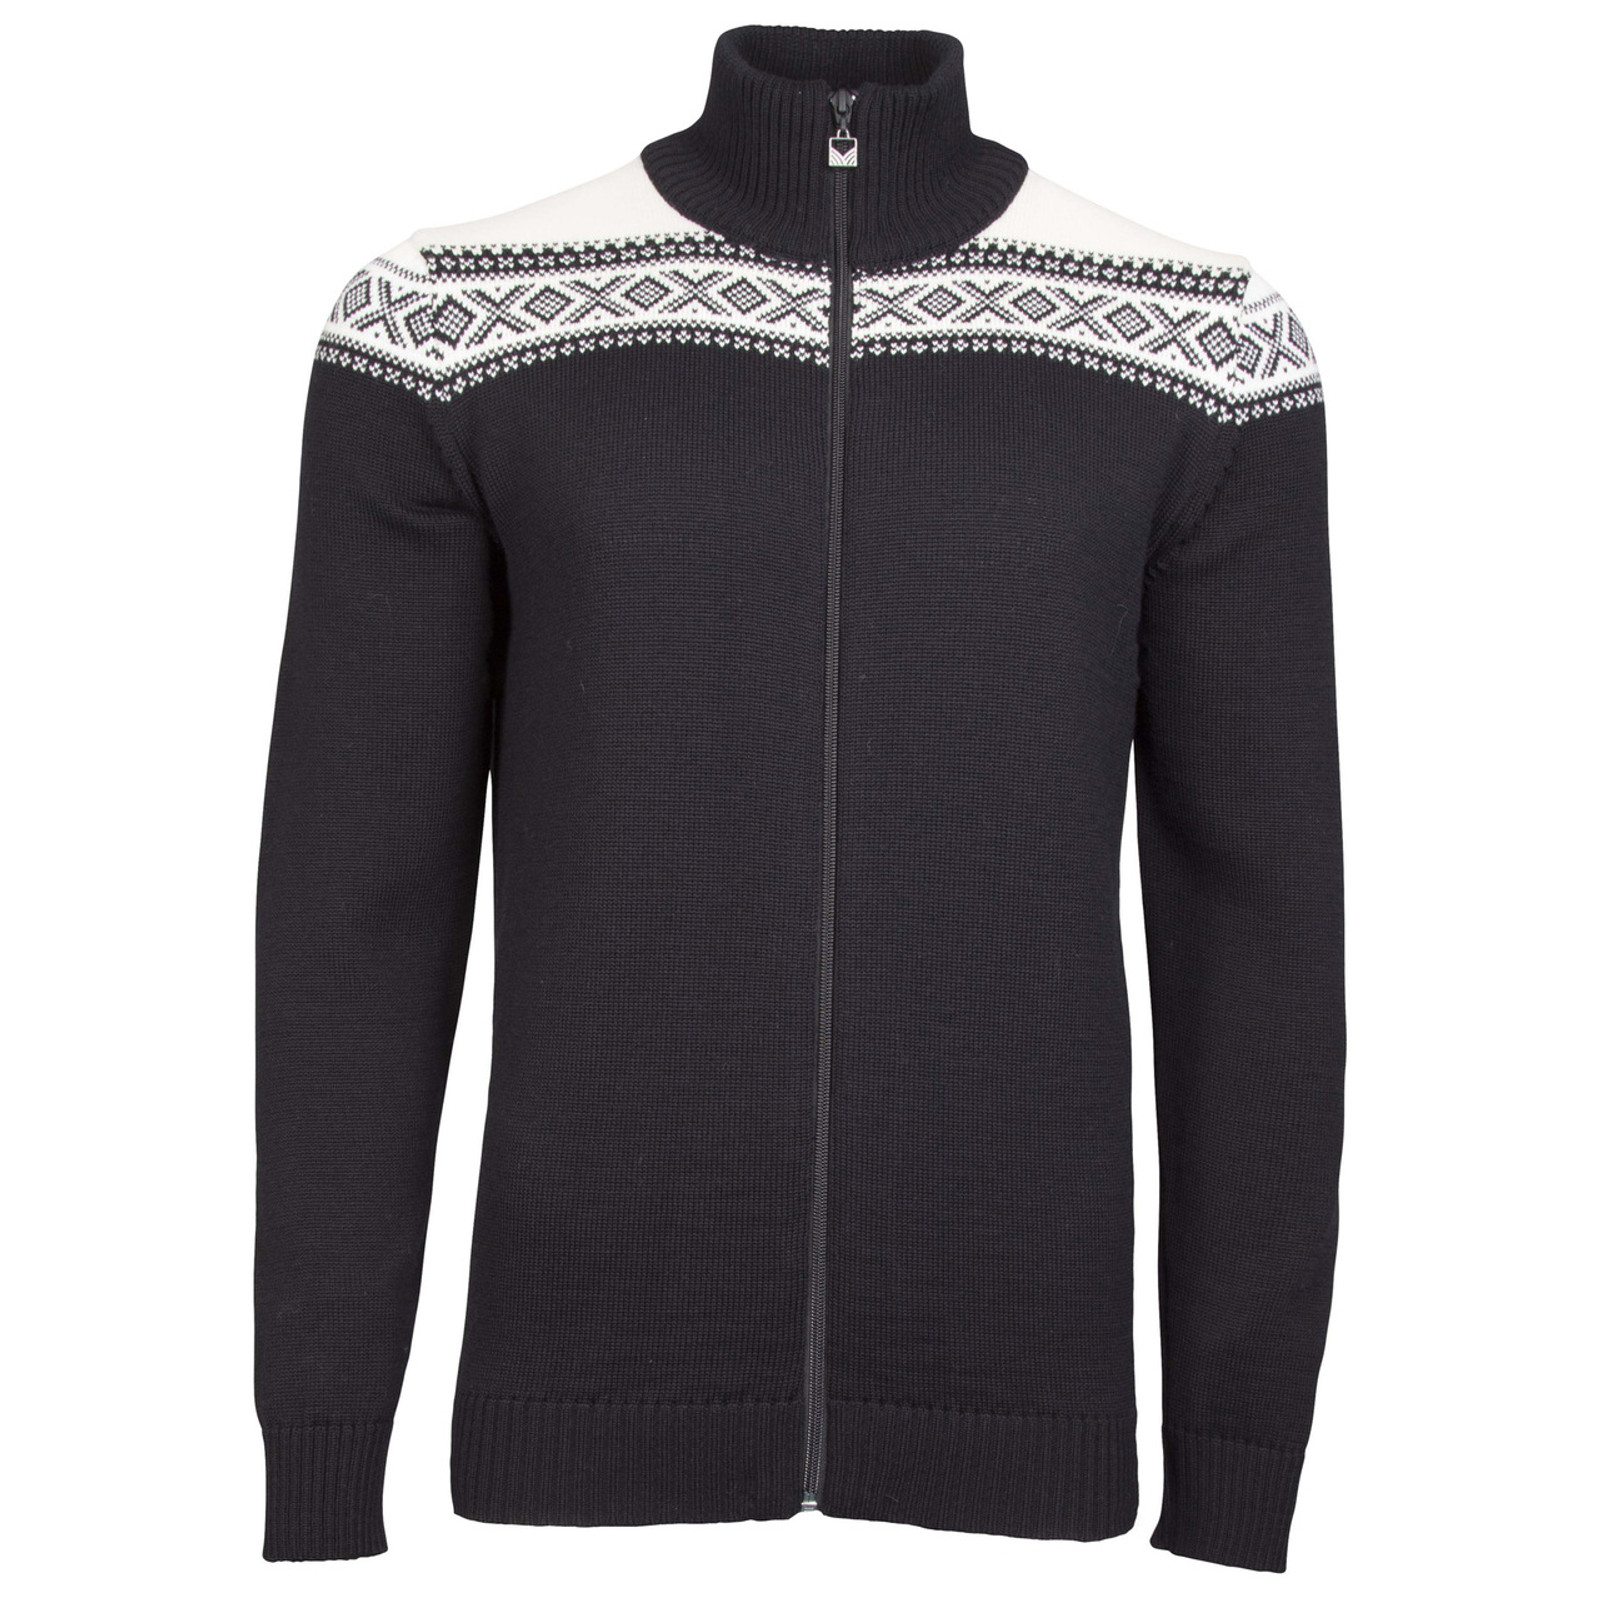 Dale of Norway Men's Cortina Merino Cardigan in Black/Off White, 83321-F